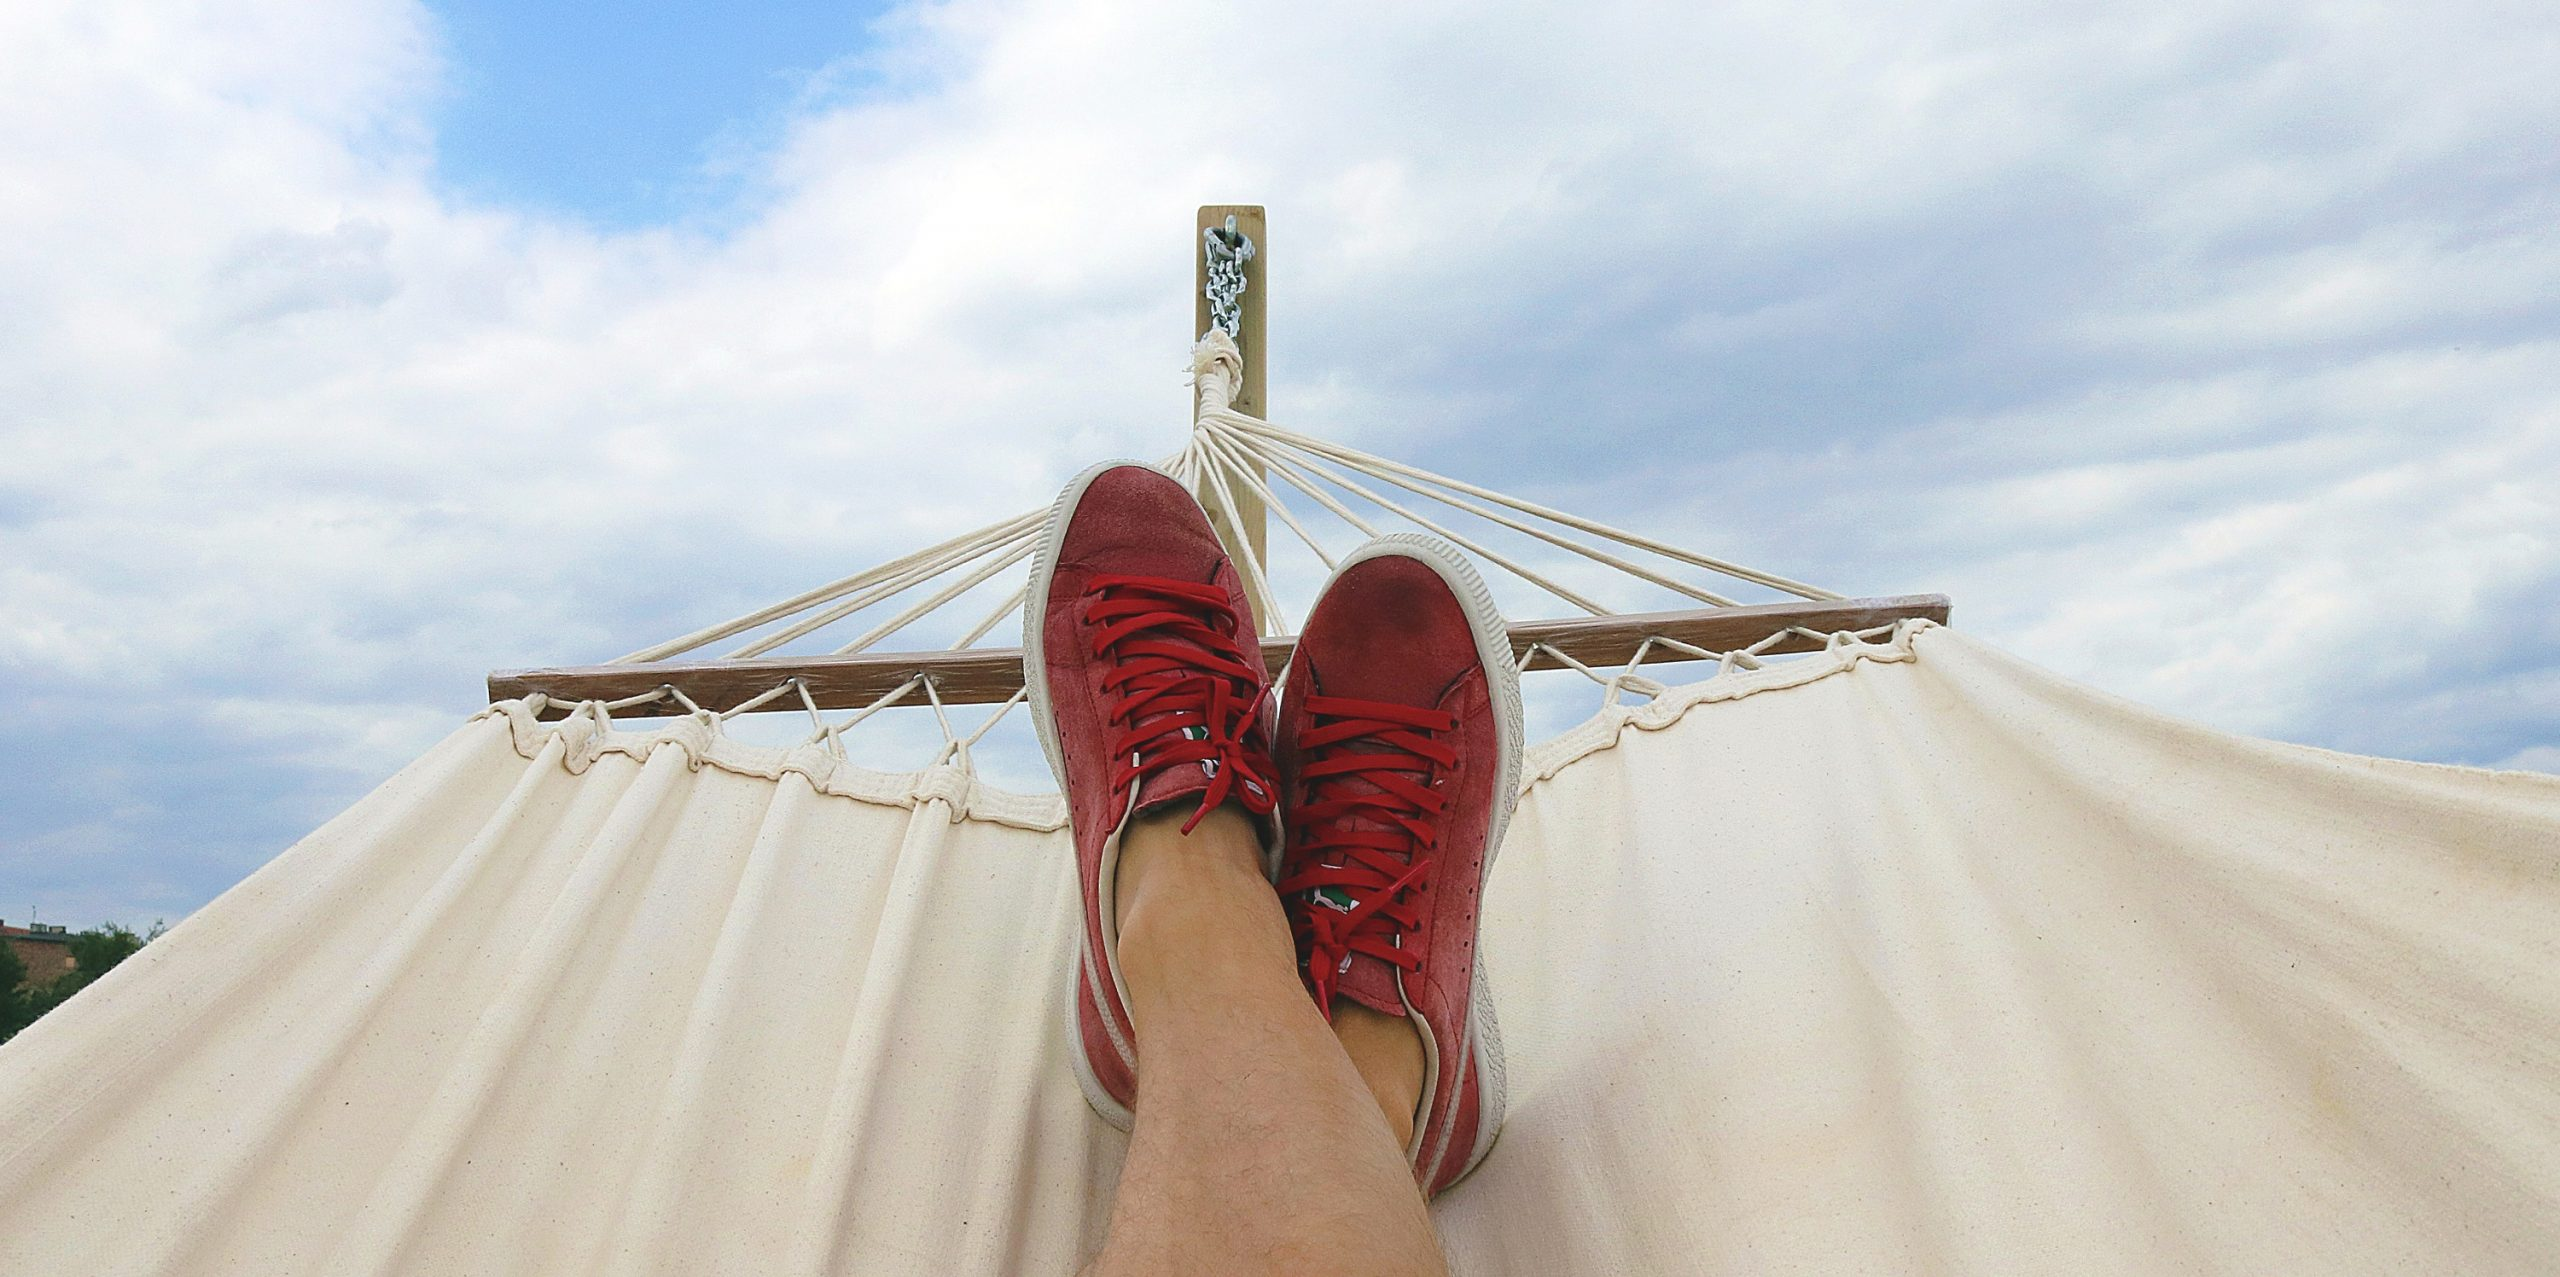 person relaxed on hammock only showing shoes